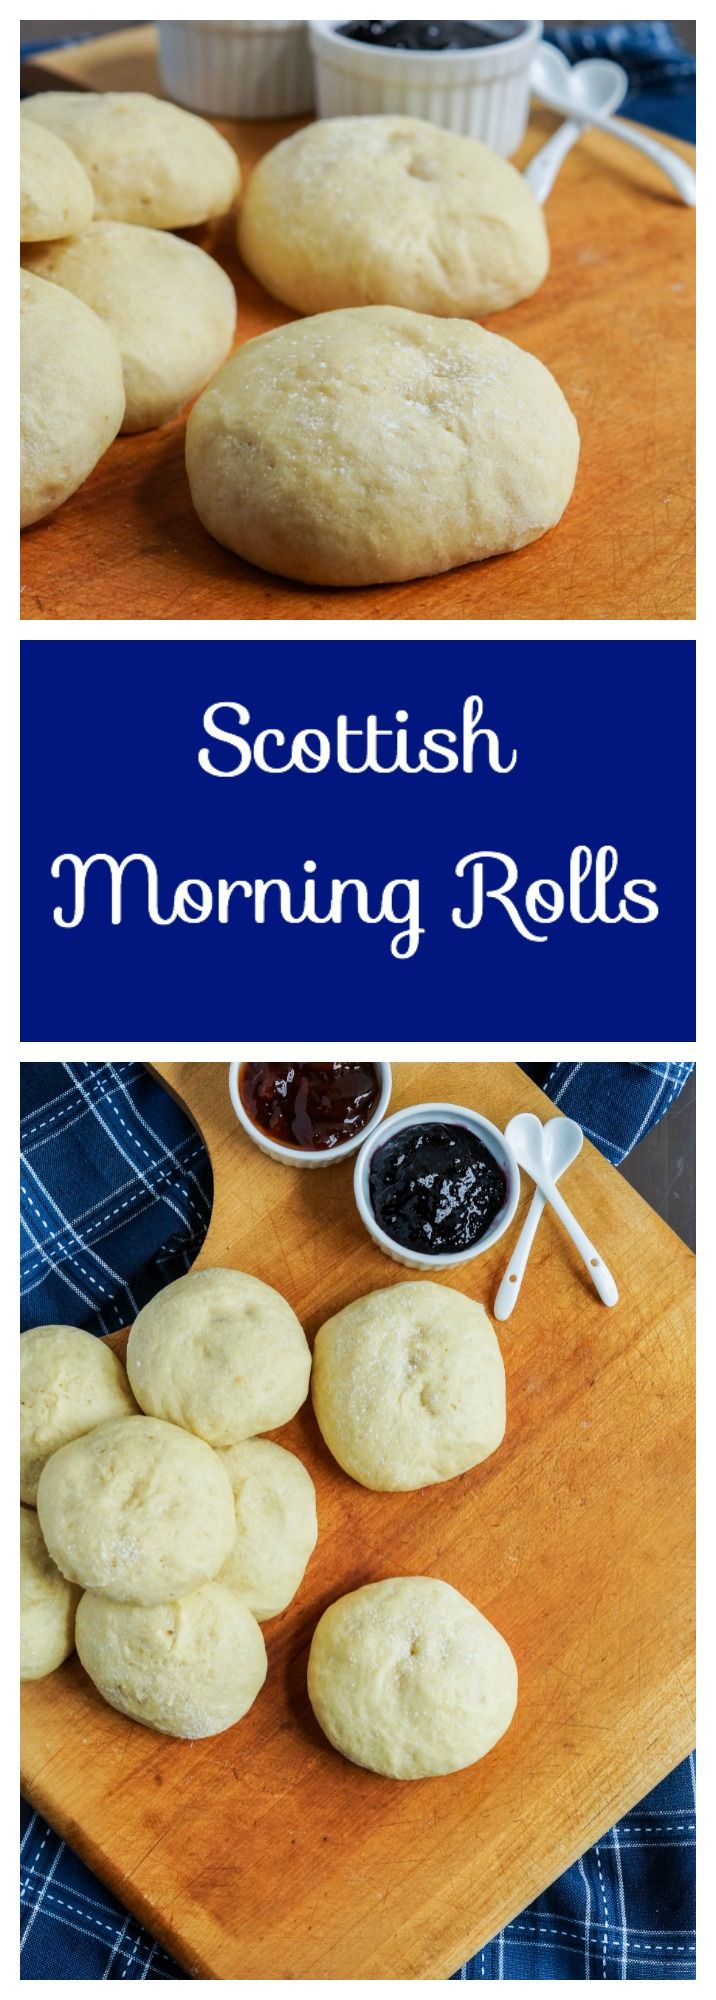 scottish-morning-rolls